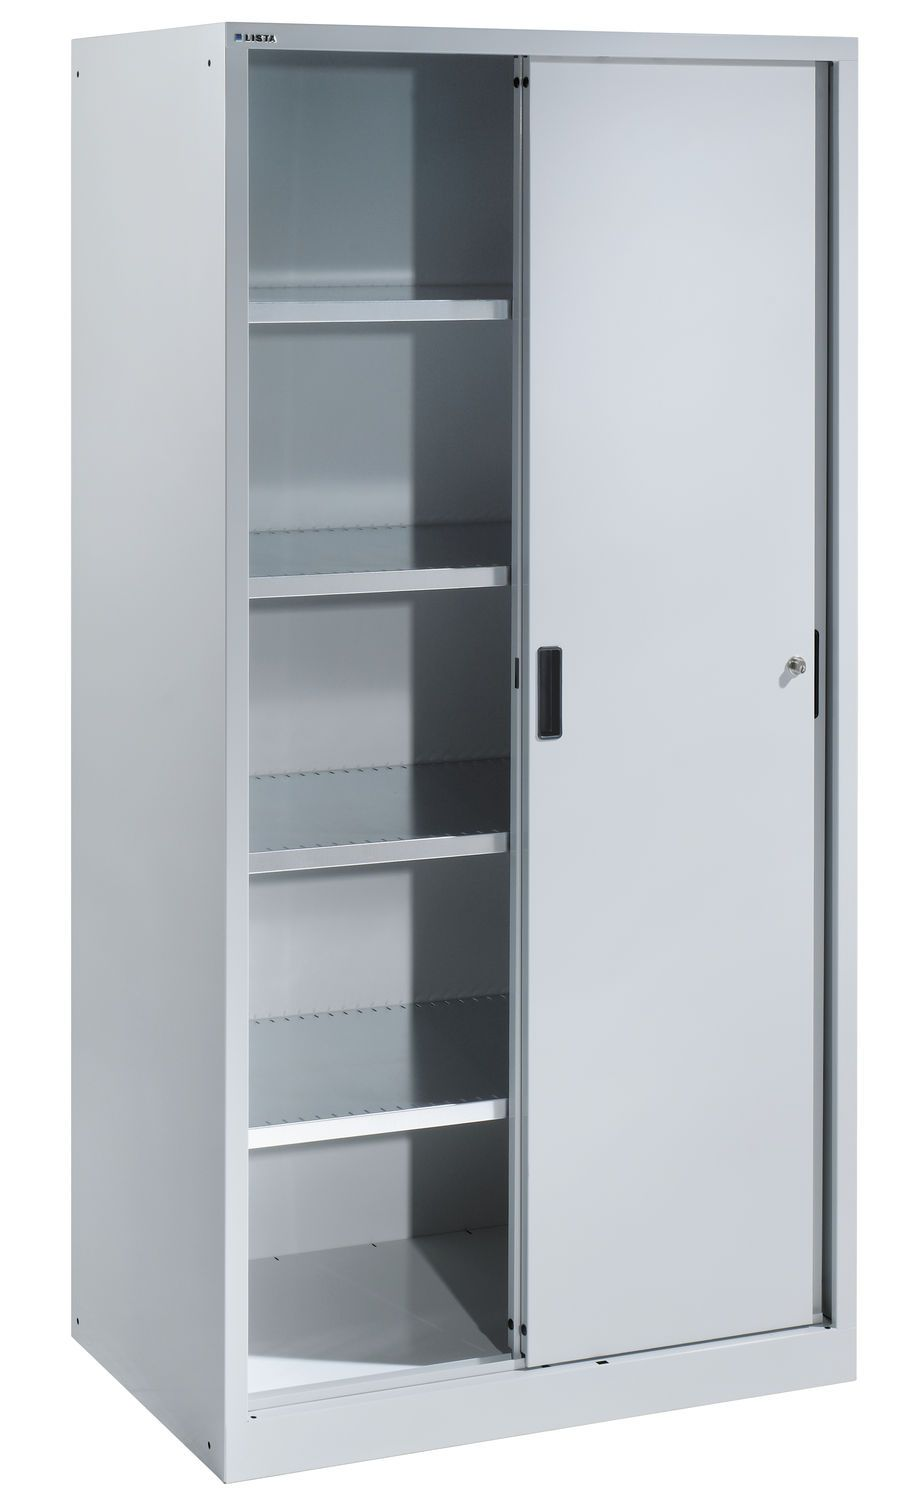 Le Meilleur Awe Inspiring Storage Cabinets With Doors Also Adjustable Ce Mois Ci